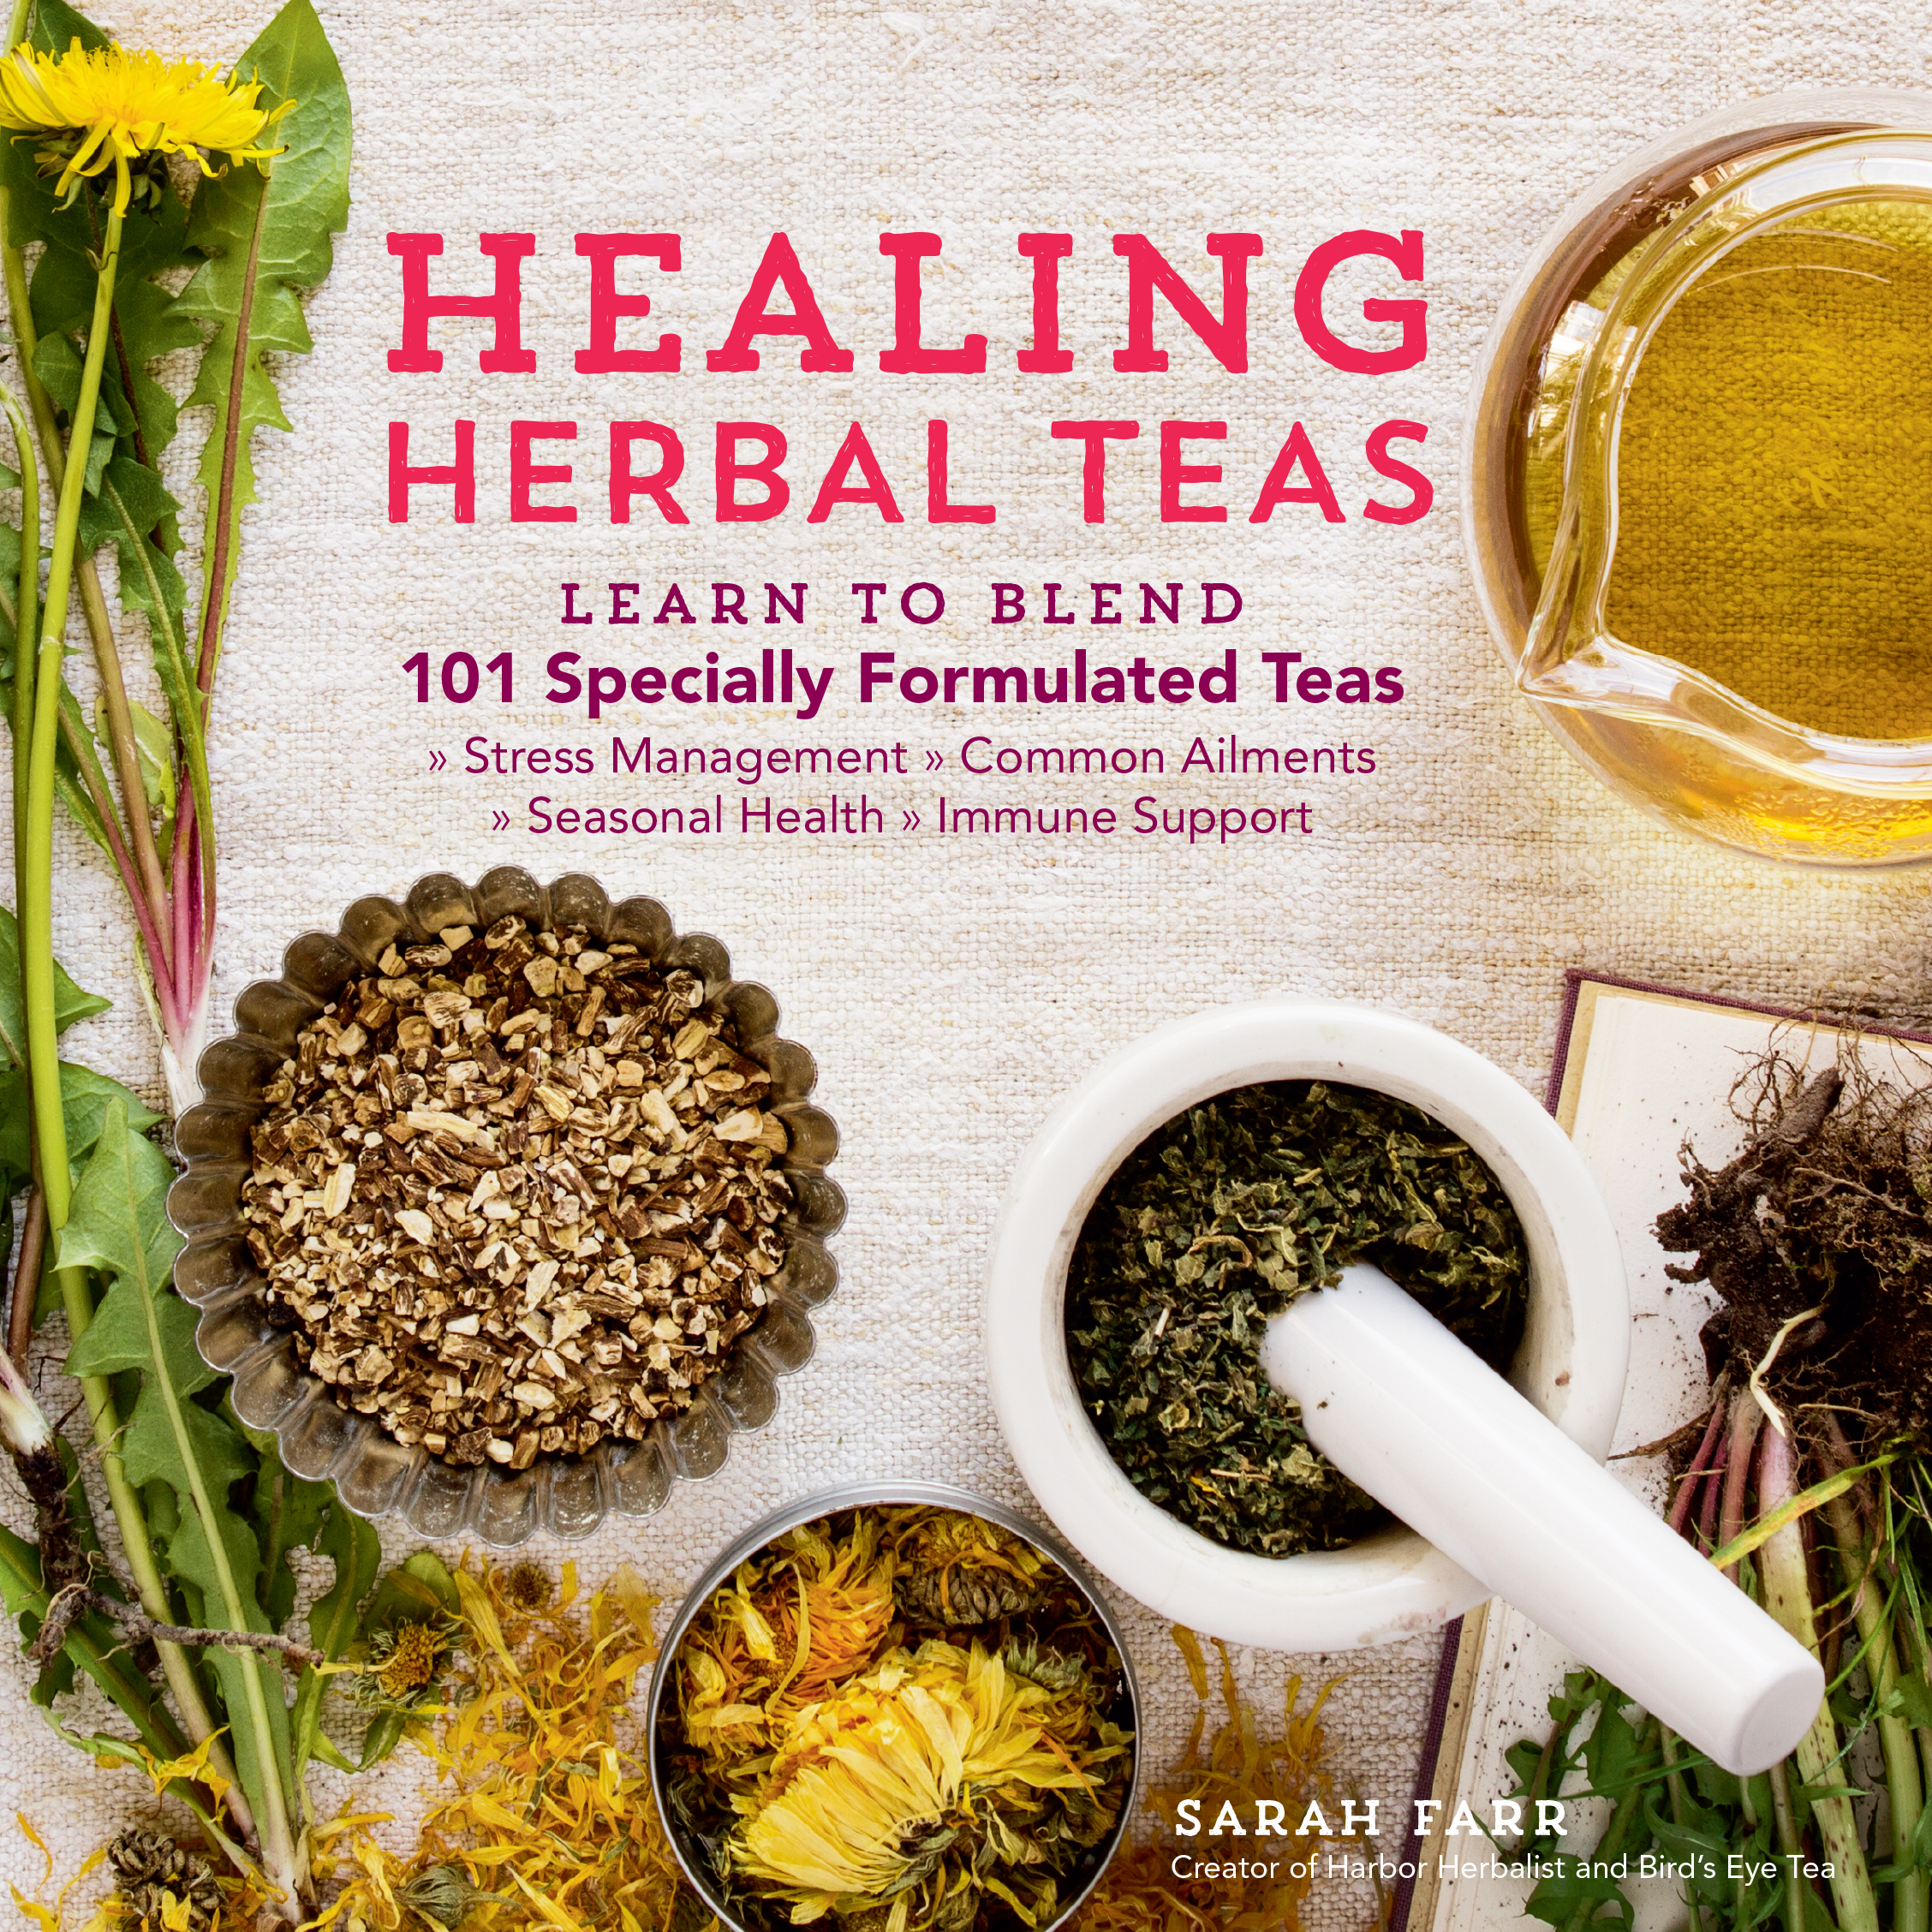 Healing Herbal Teas Learn to Blend 101 Specially Formulated Teas for Stress Management, Common Ailments, Seasonal Health, and Immune Support - Sarah Farr